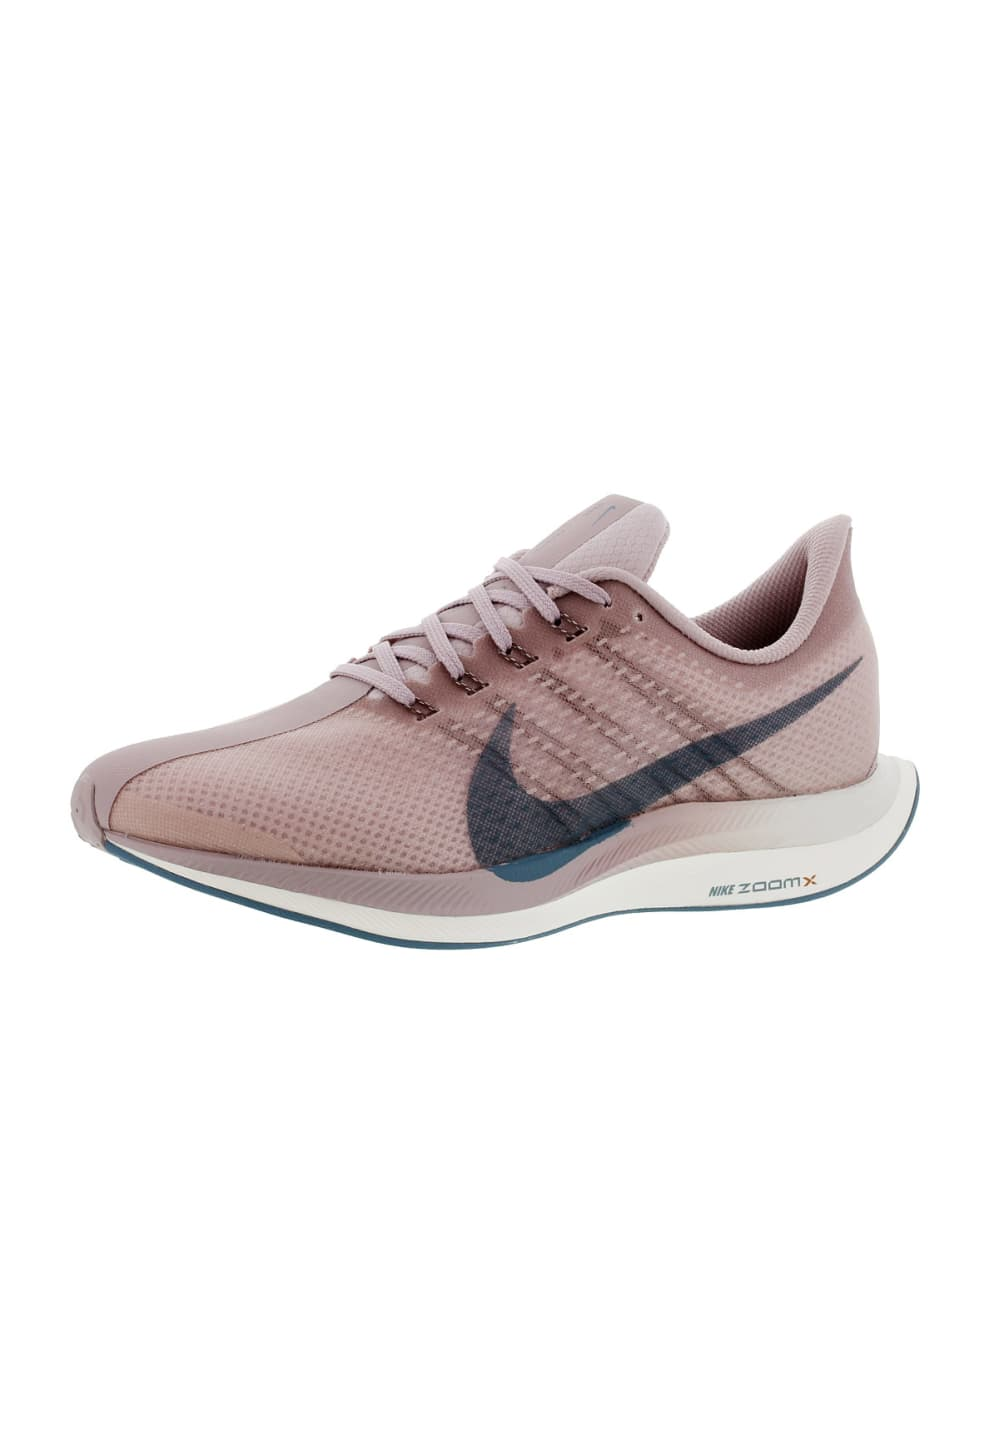 66fbceeff44ed Next. -60%. This product is currently out of stock. Nike. Zoom Pegasus Turbo  - Running shoes for Women